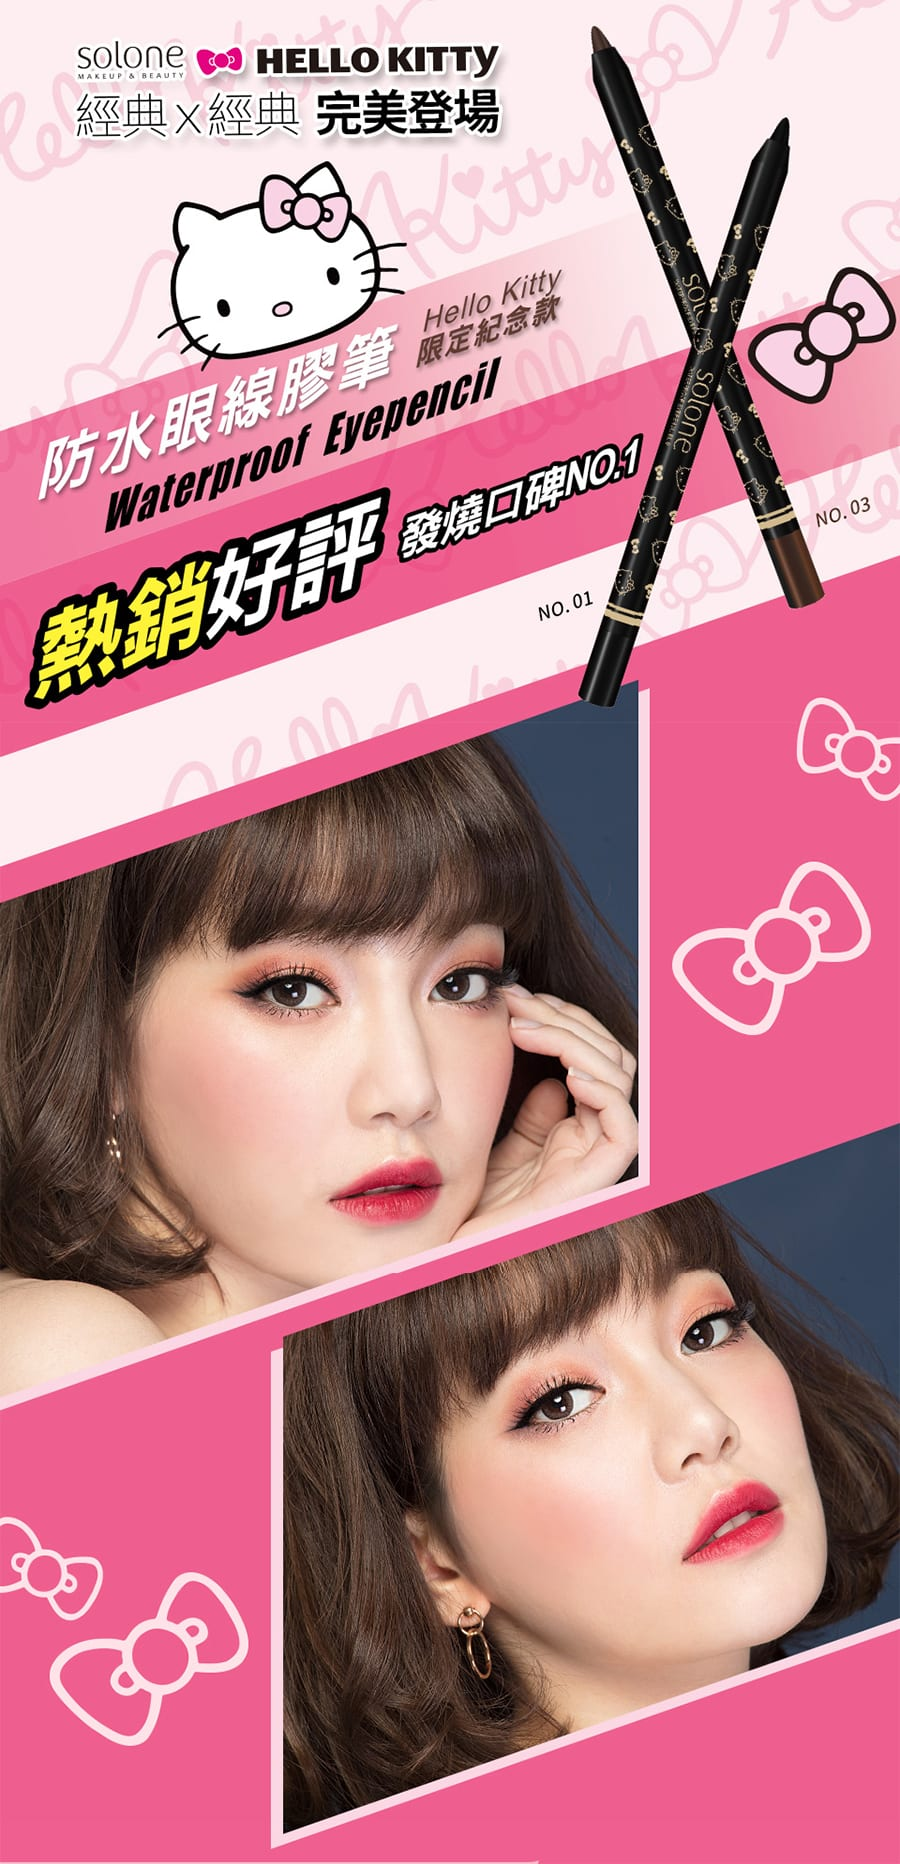 Solone Hello Kitty EyePencil - Waterproof eyepencil